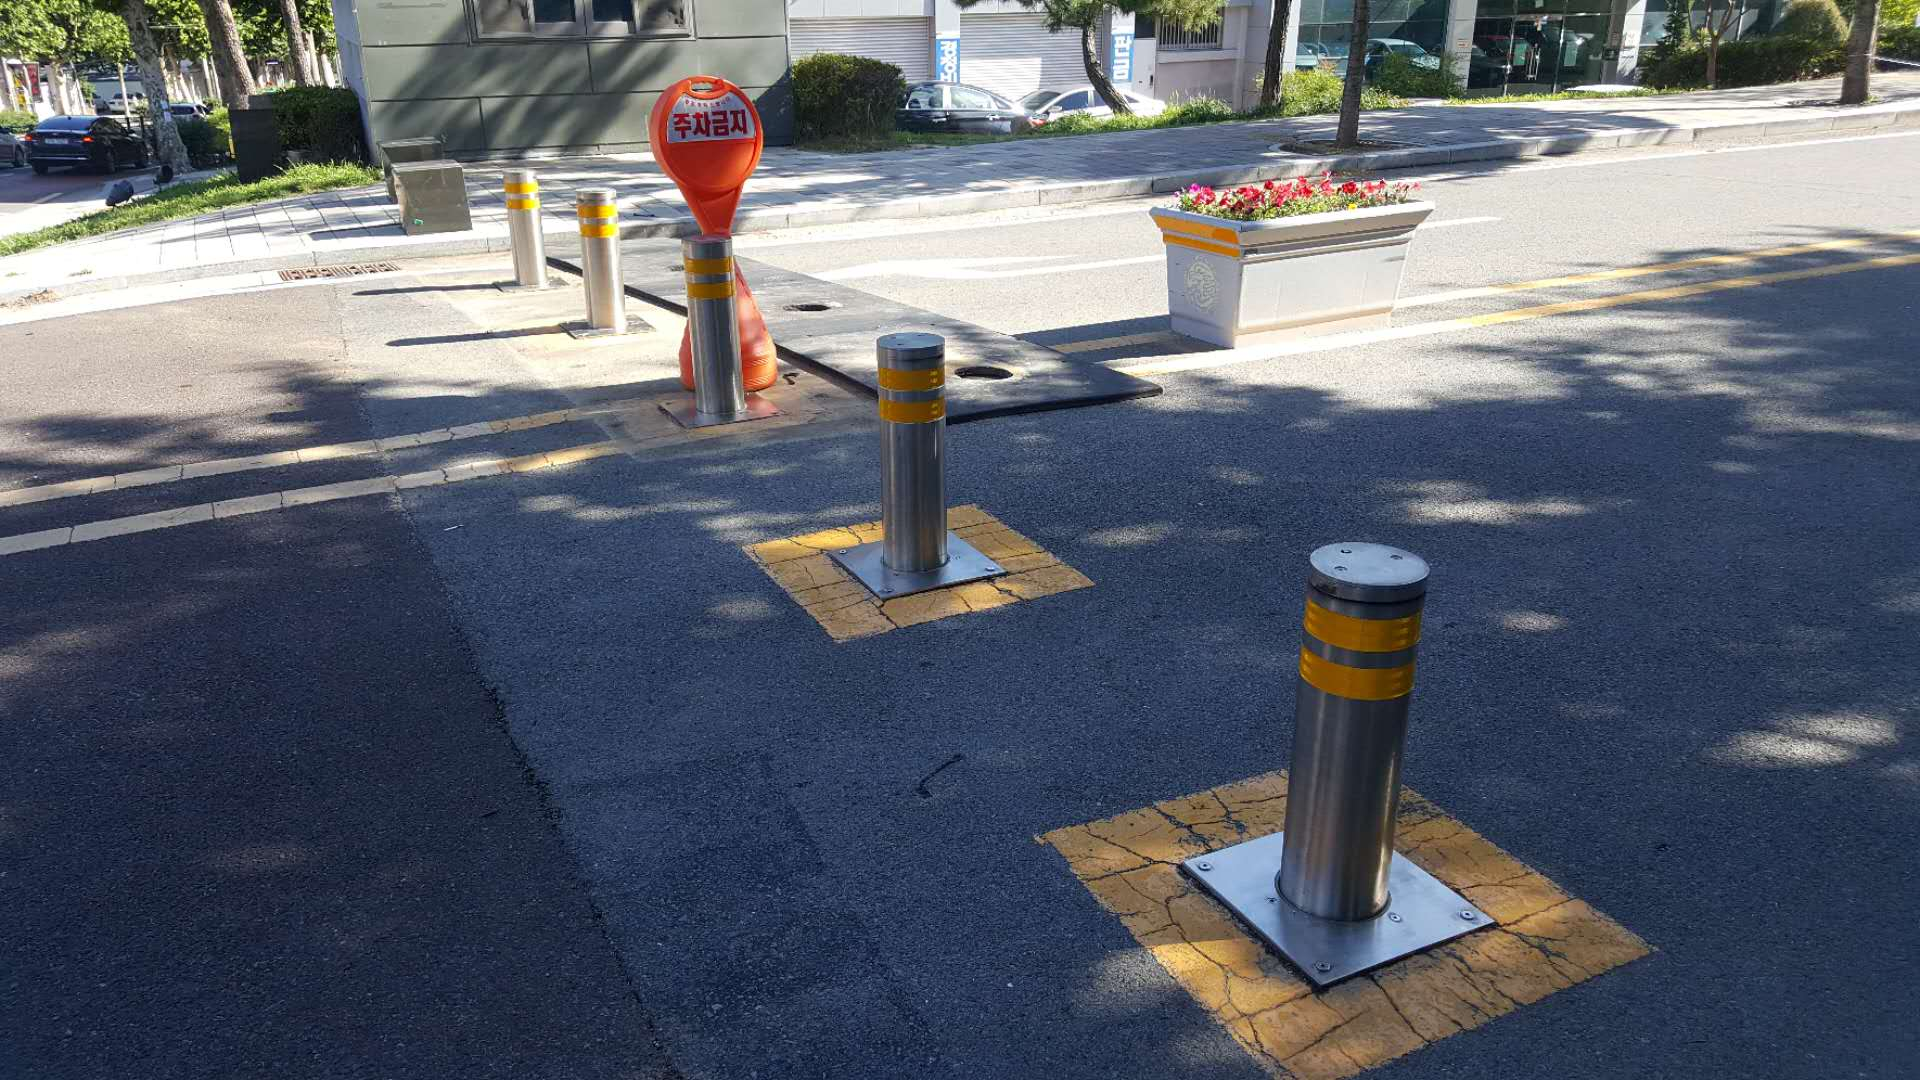 Semi-automatic bollards